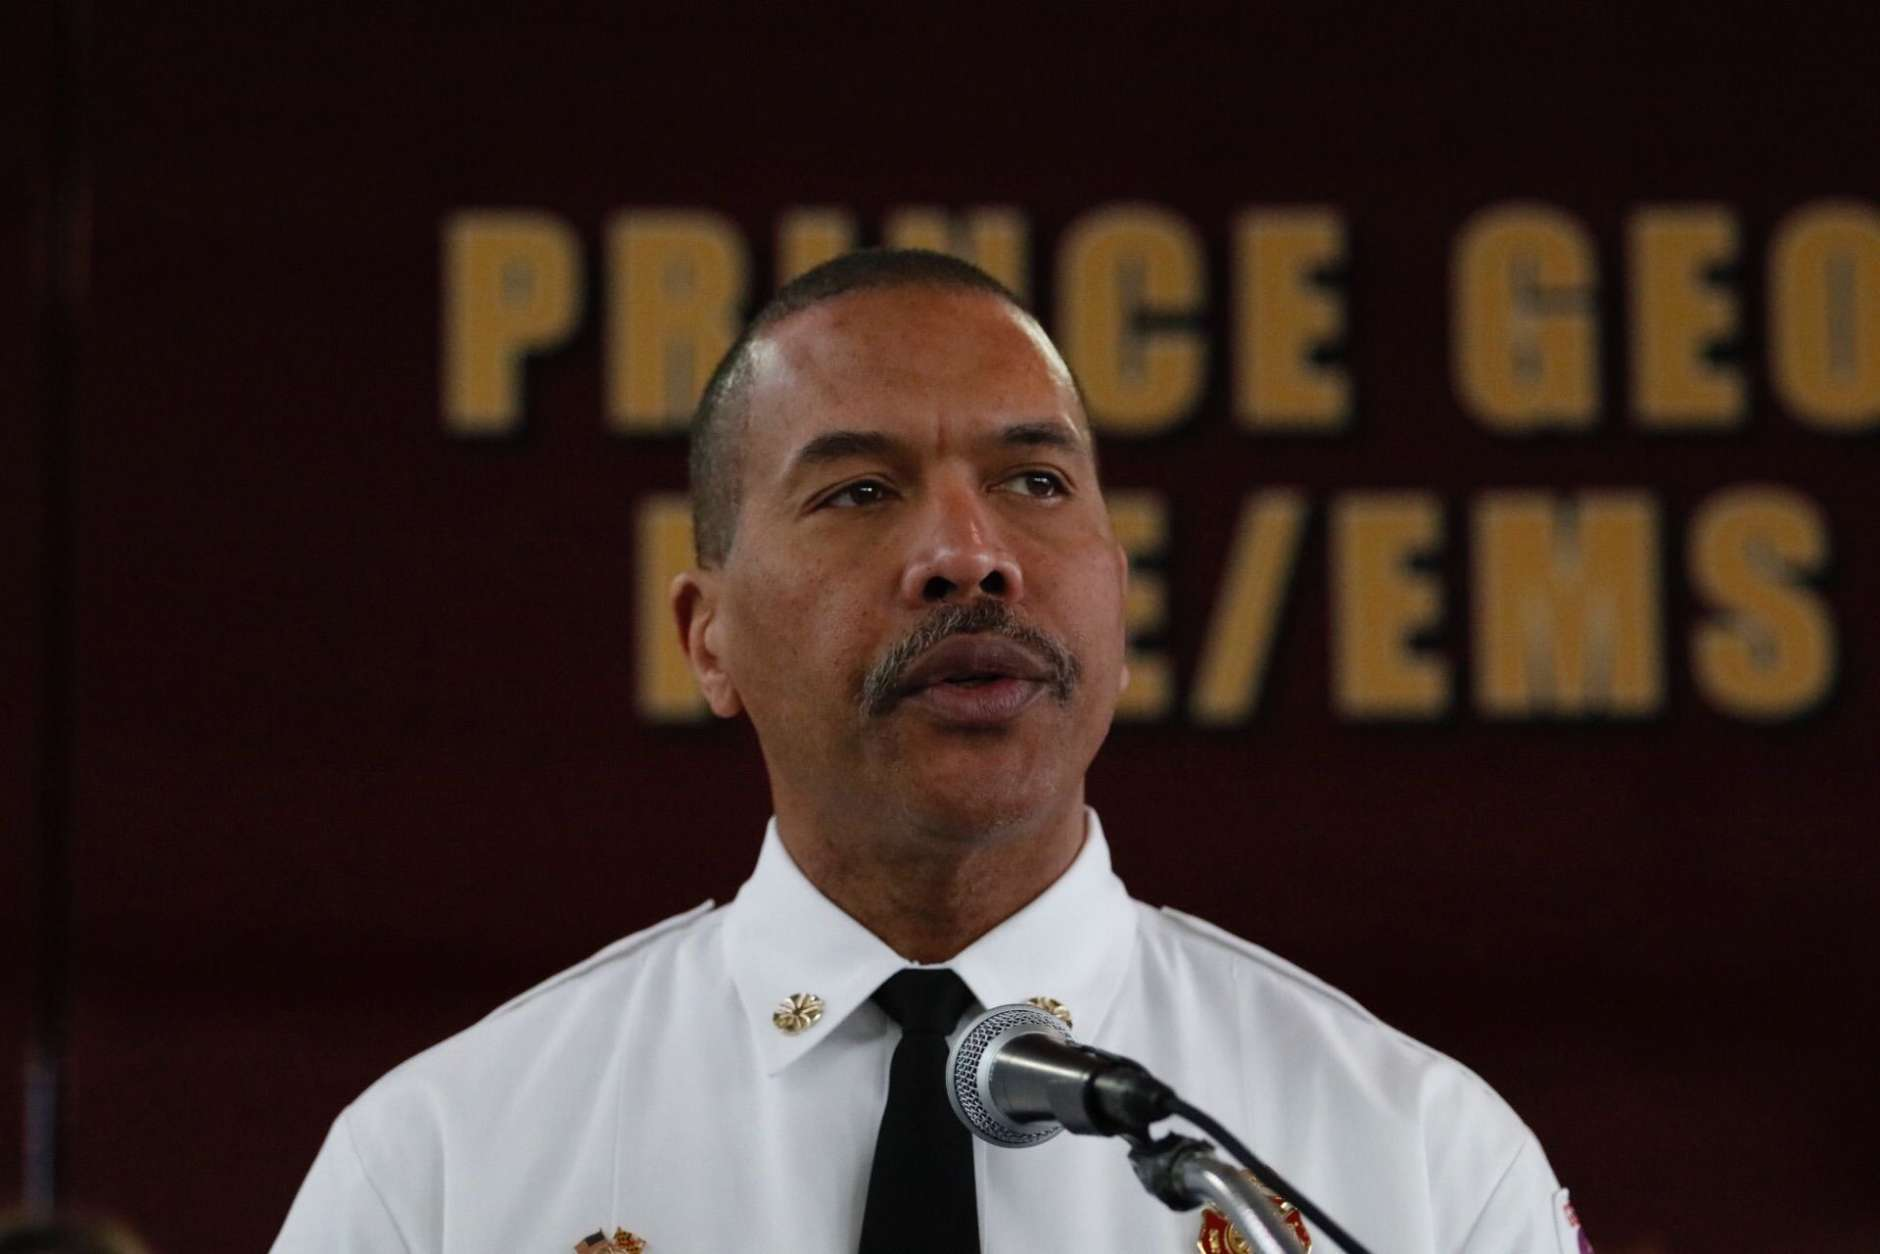 Prince George's County fire Chief Benjamin Barksdale said in a news conference Jan. 24, 2018, announcing the county's lawsuit against opioid manufacturers that the fire department has experienced a 260 percent increase in Narcan administration since 2014. (WTOP/Kate Ryan)